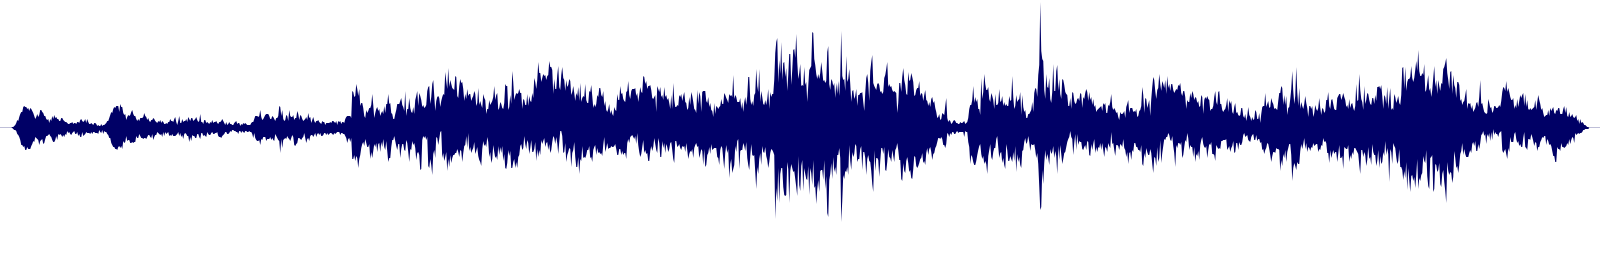 waveform of track #144160